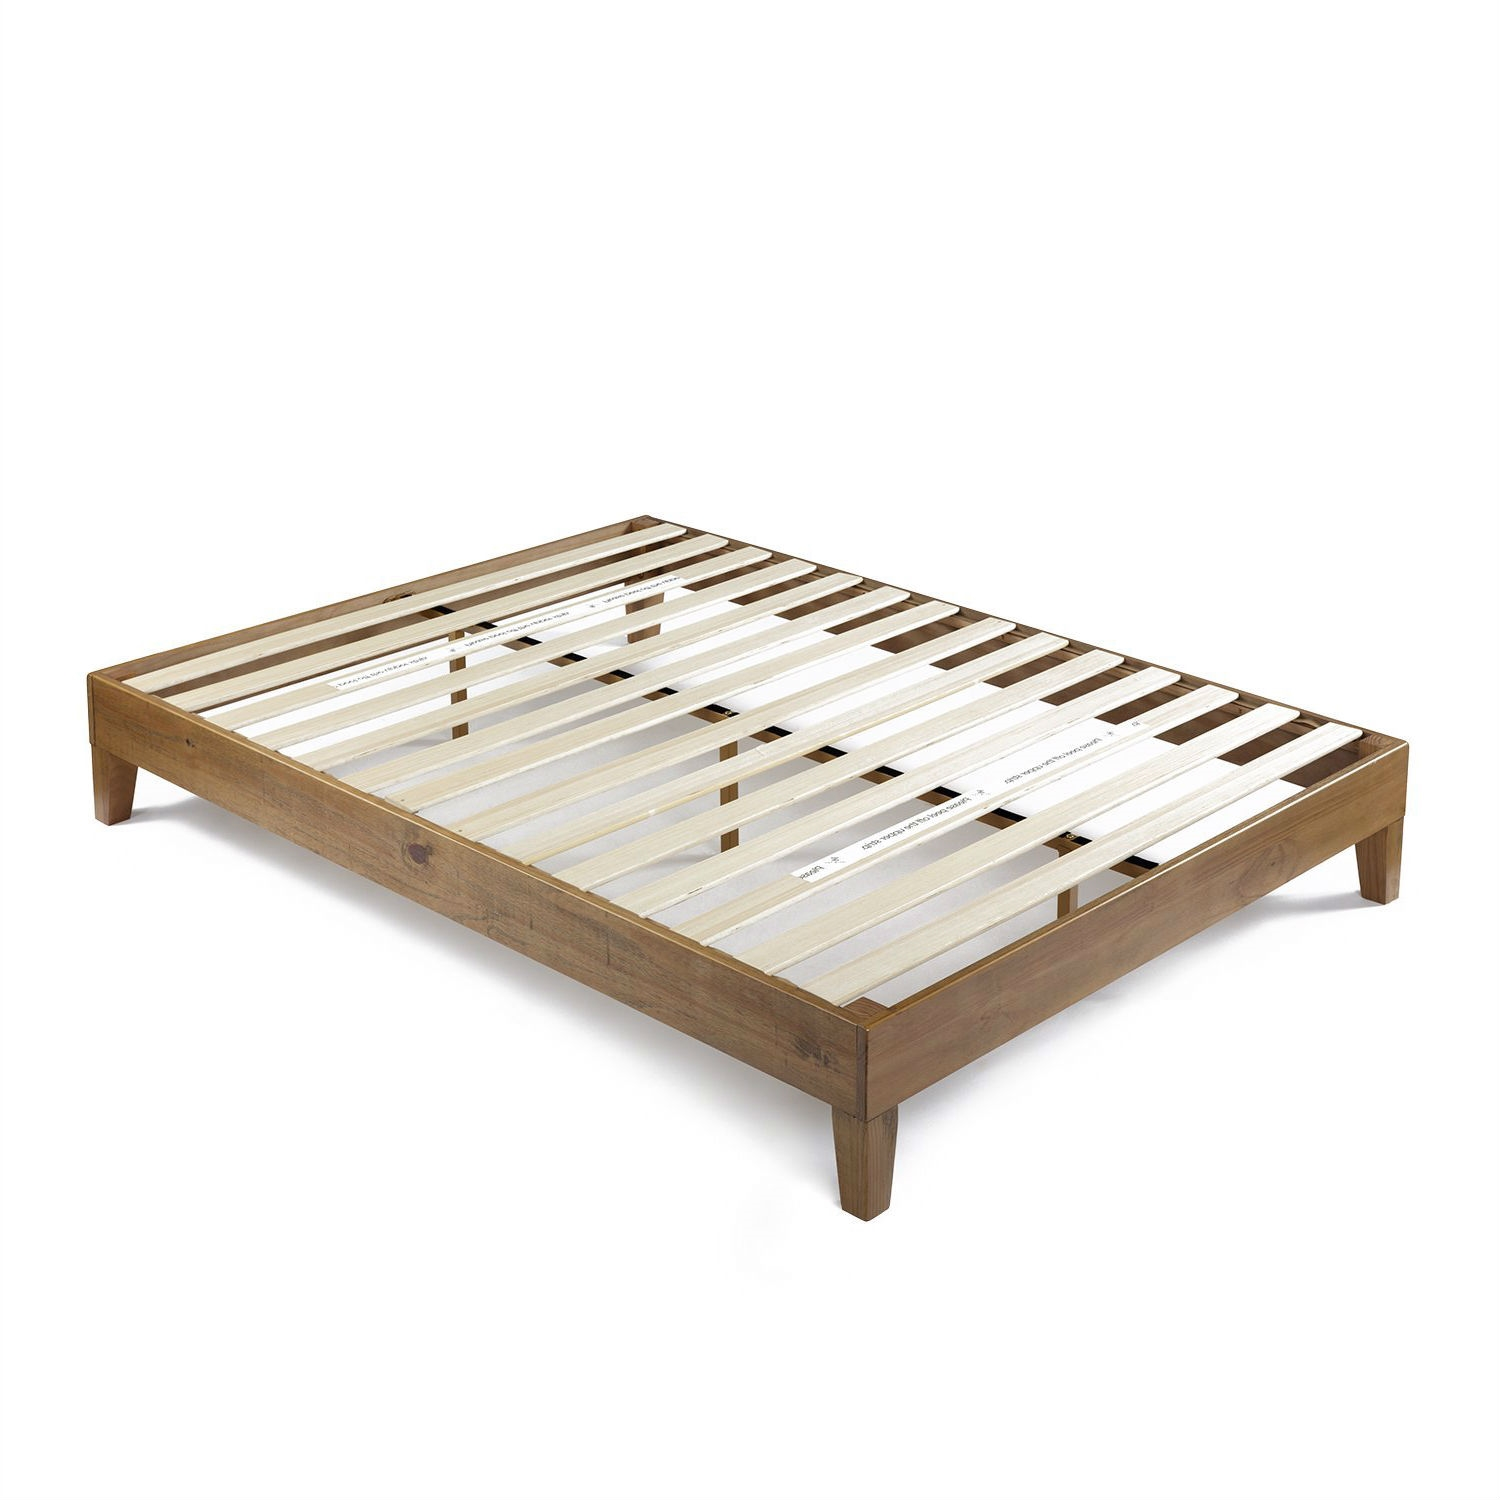 queen size solid wood modern platform bed frame in rustic pine finish